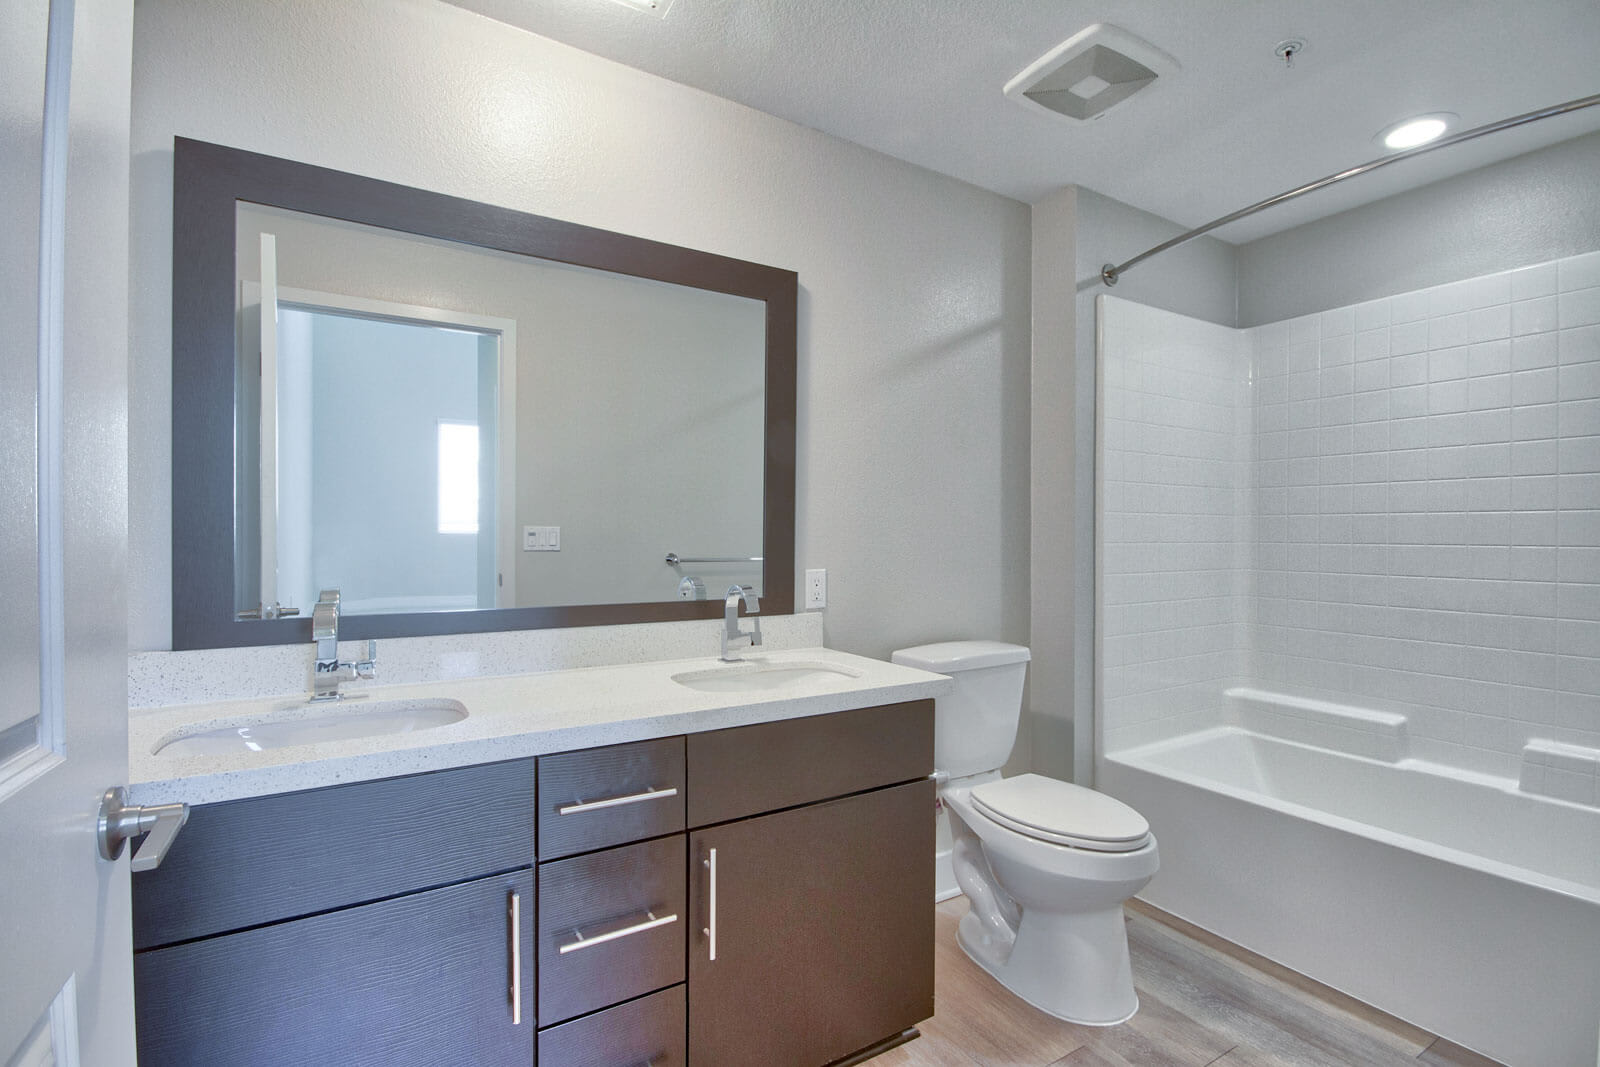 Dual Vanities in Select Apartments at Boardwalk by Windsor, 7461 Edinger Ave., Huntington Beach